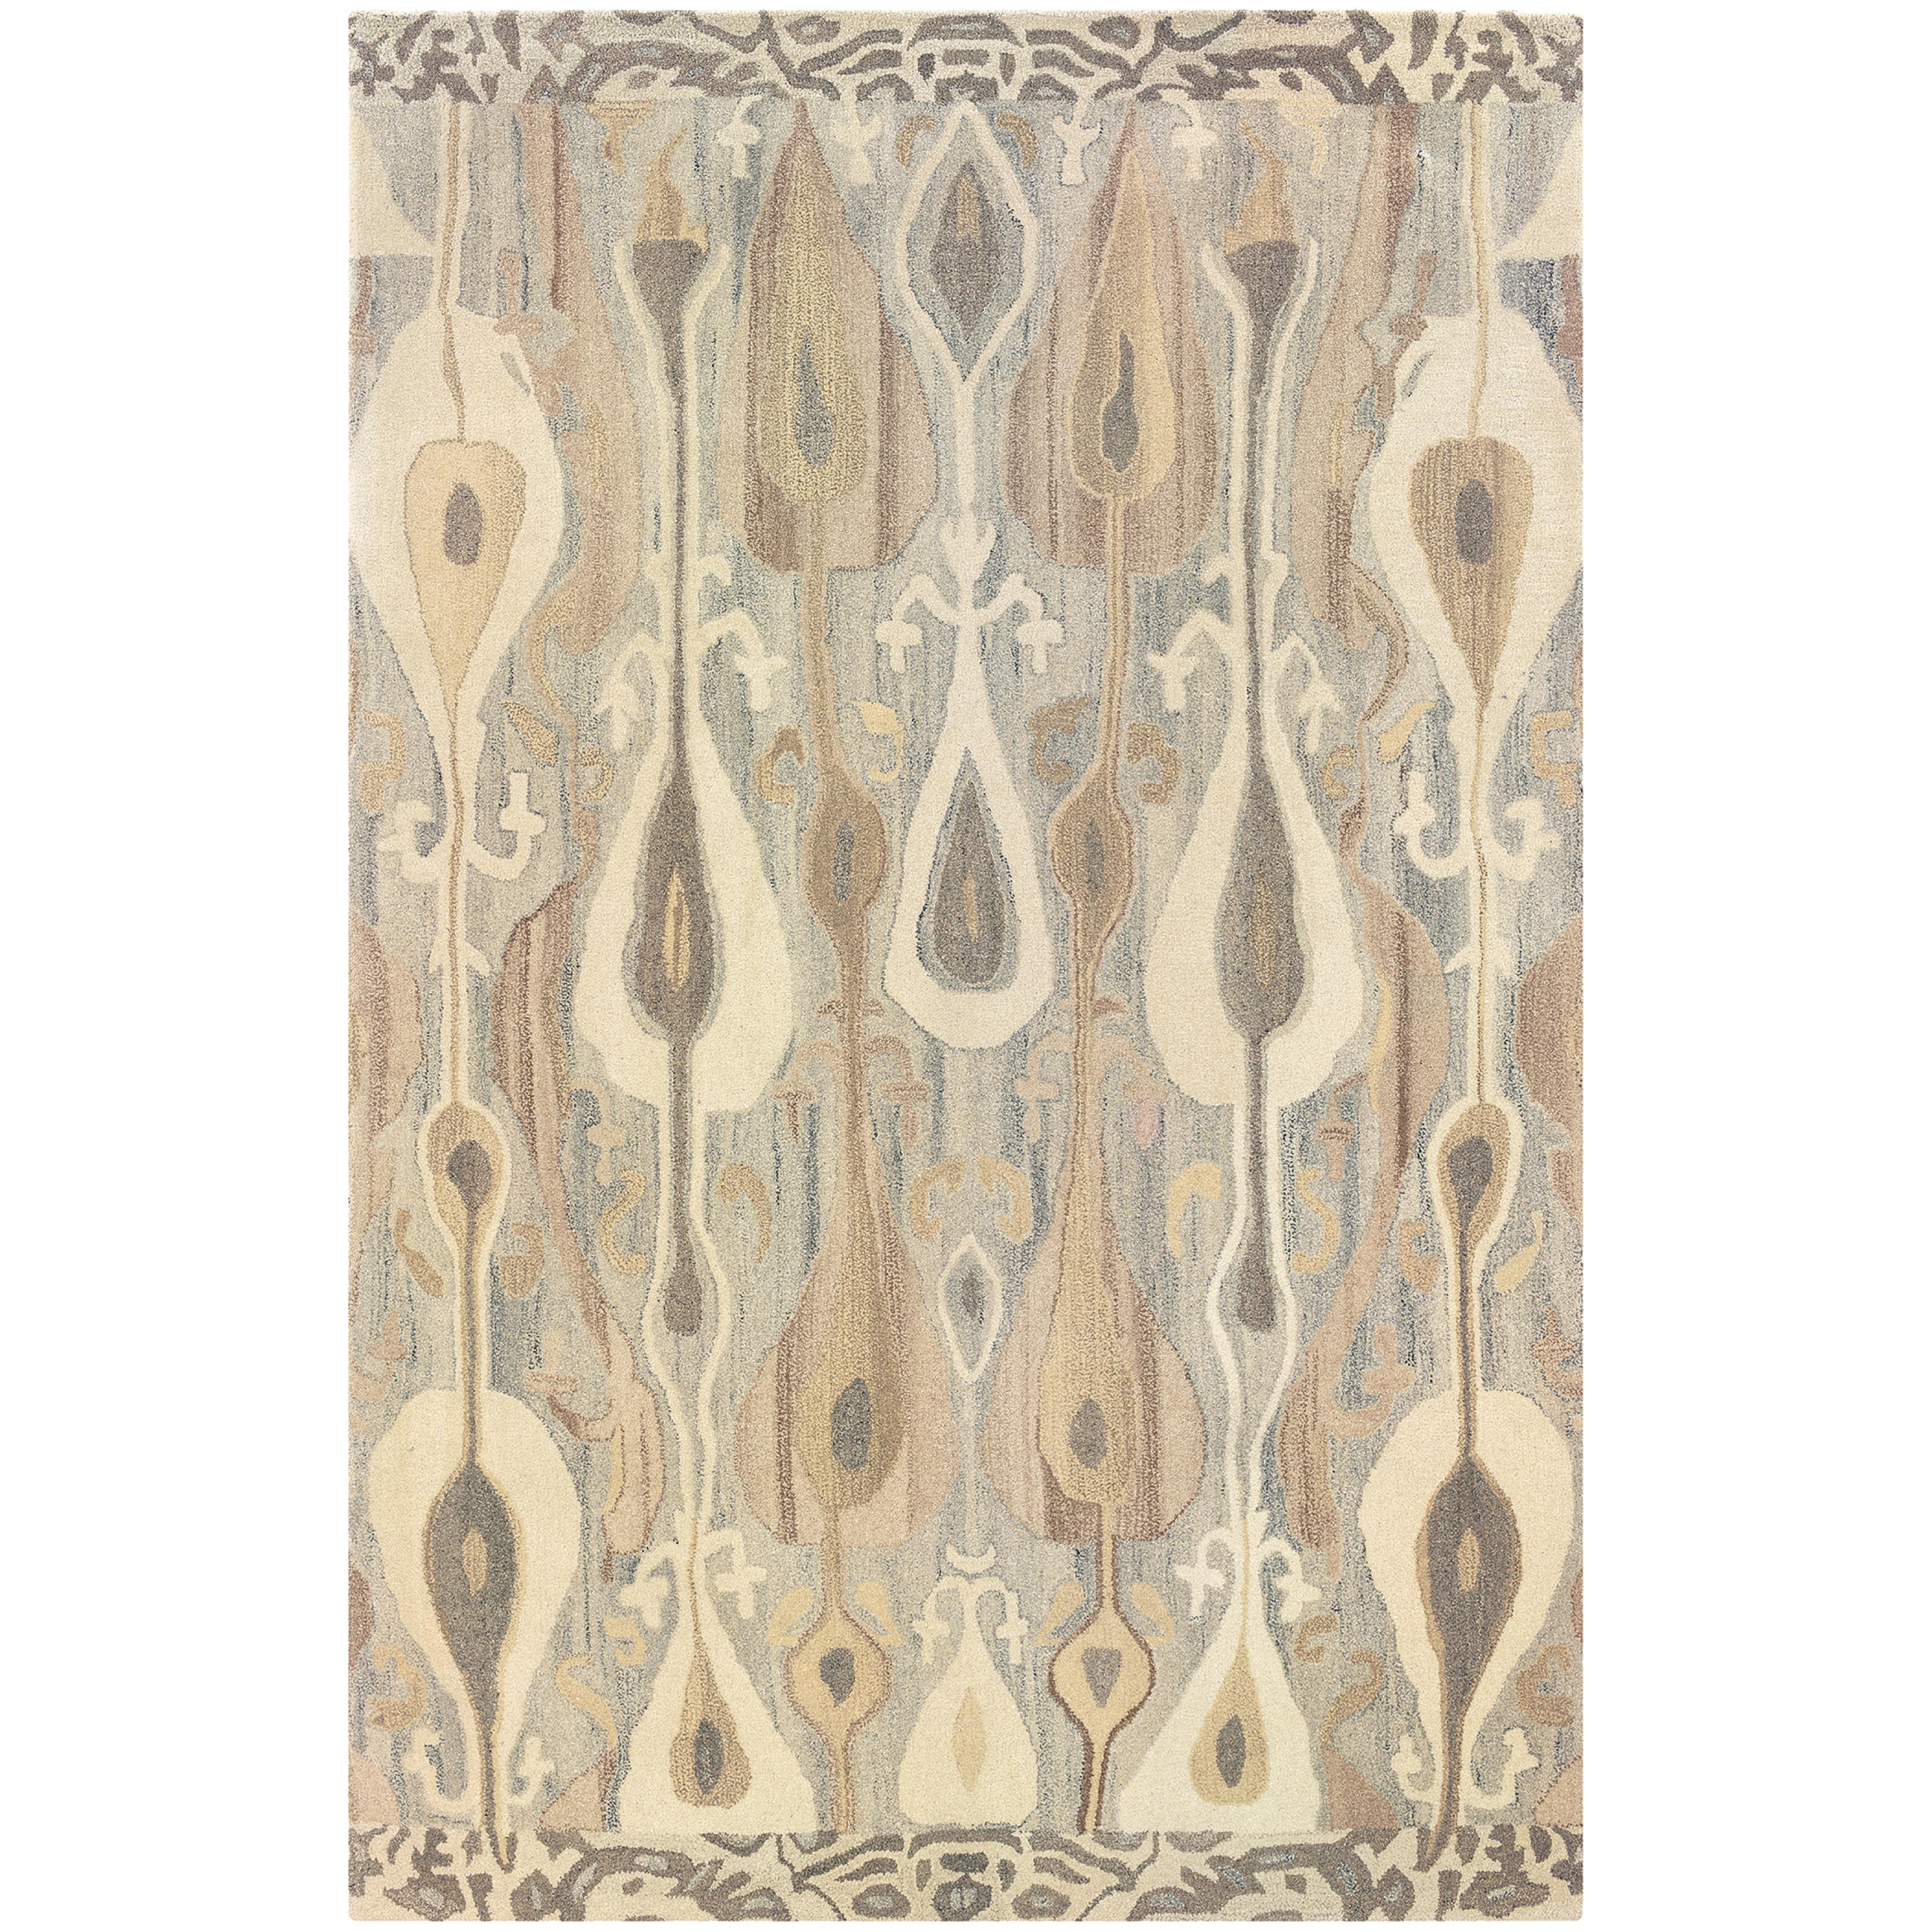 Anastasia 8' x 10' Rug by Oriental Weavers at HomeWorld Furniture